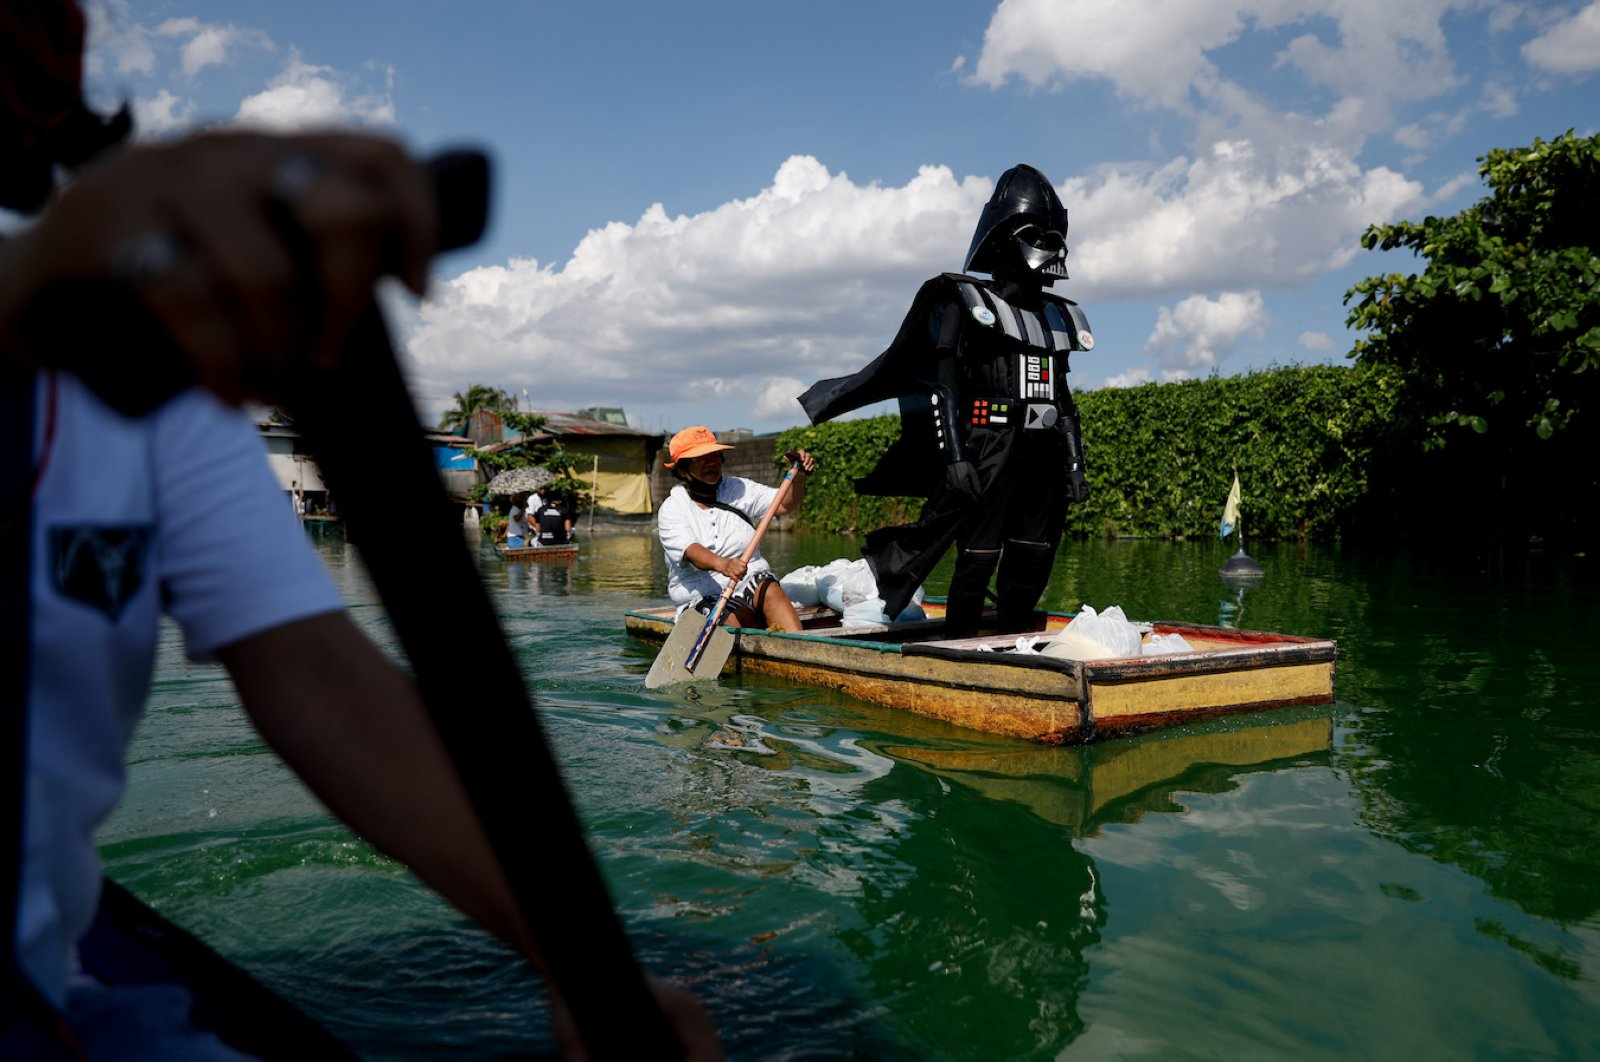 A village officer dressed as the Star Wars character Darth Vader rides a small boat to deliver relief goods to residents in the flooded Artex Compound in Malabon, Metro Manila, Philippines, May 4, 2020. REUTERS/Eloisa Lopez